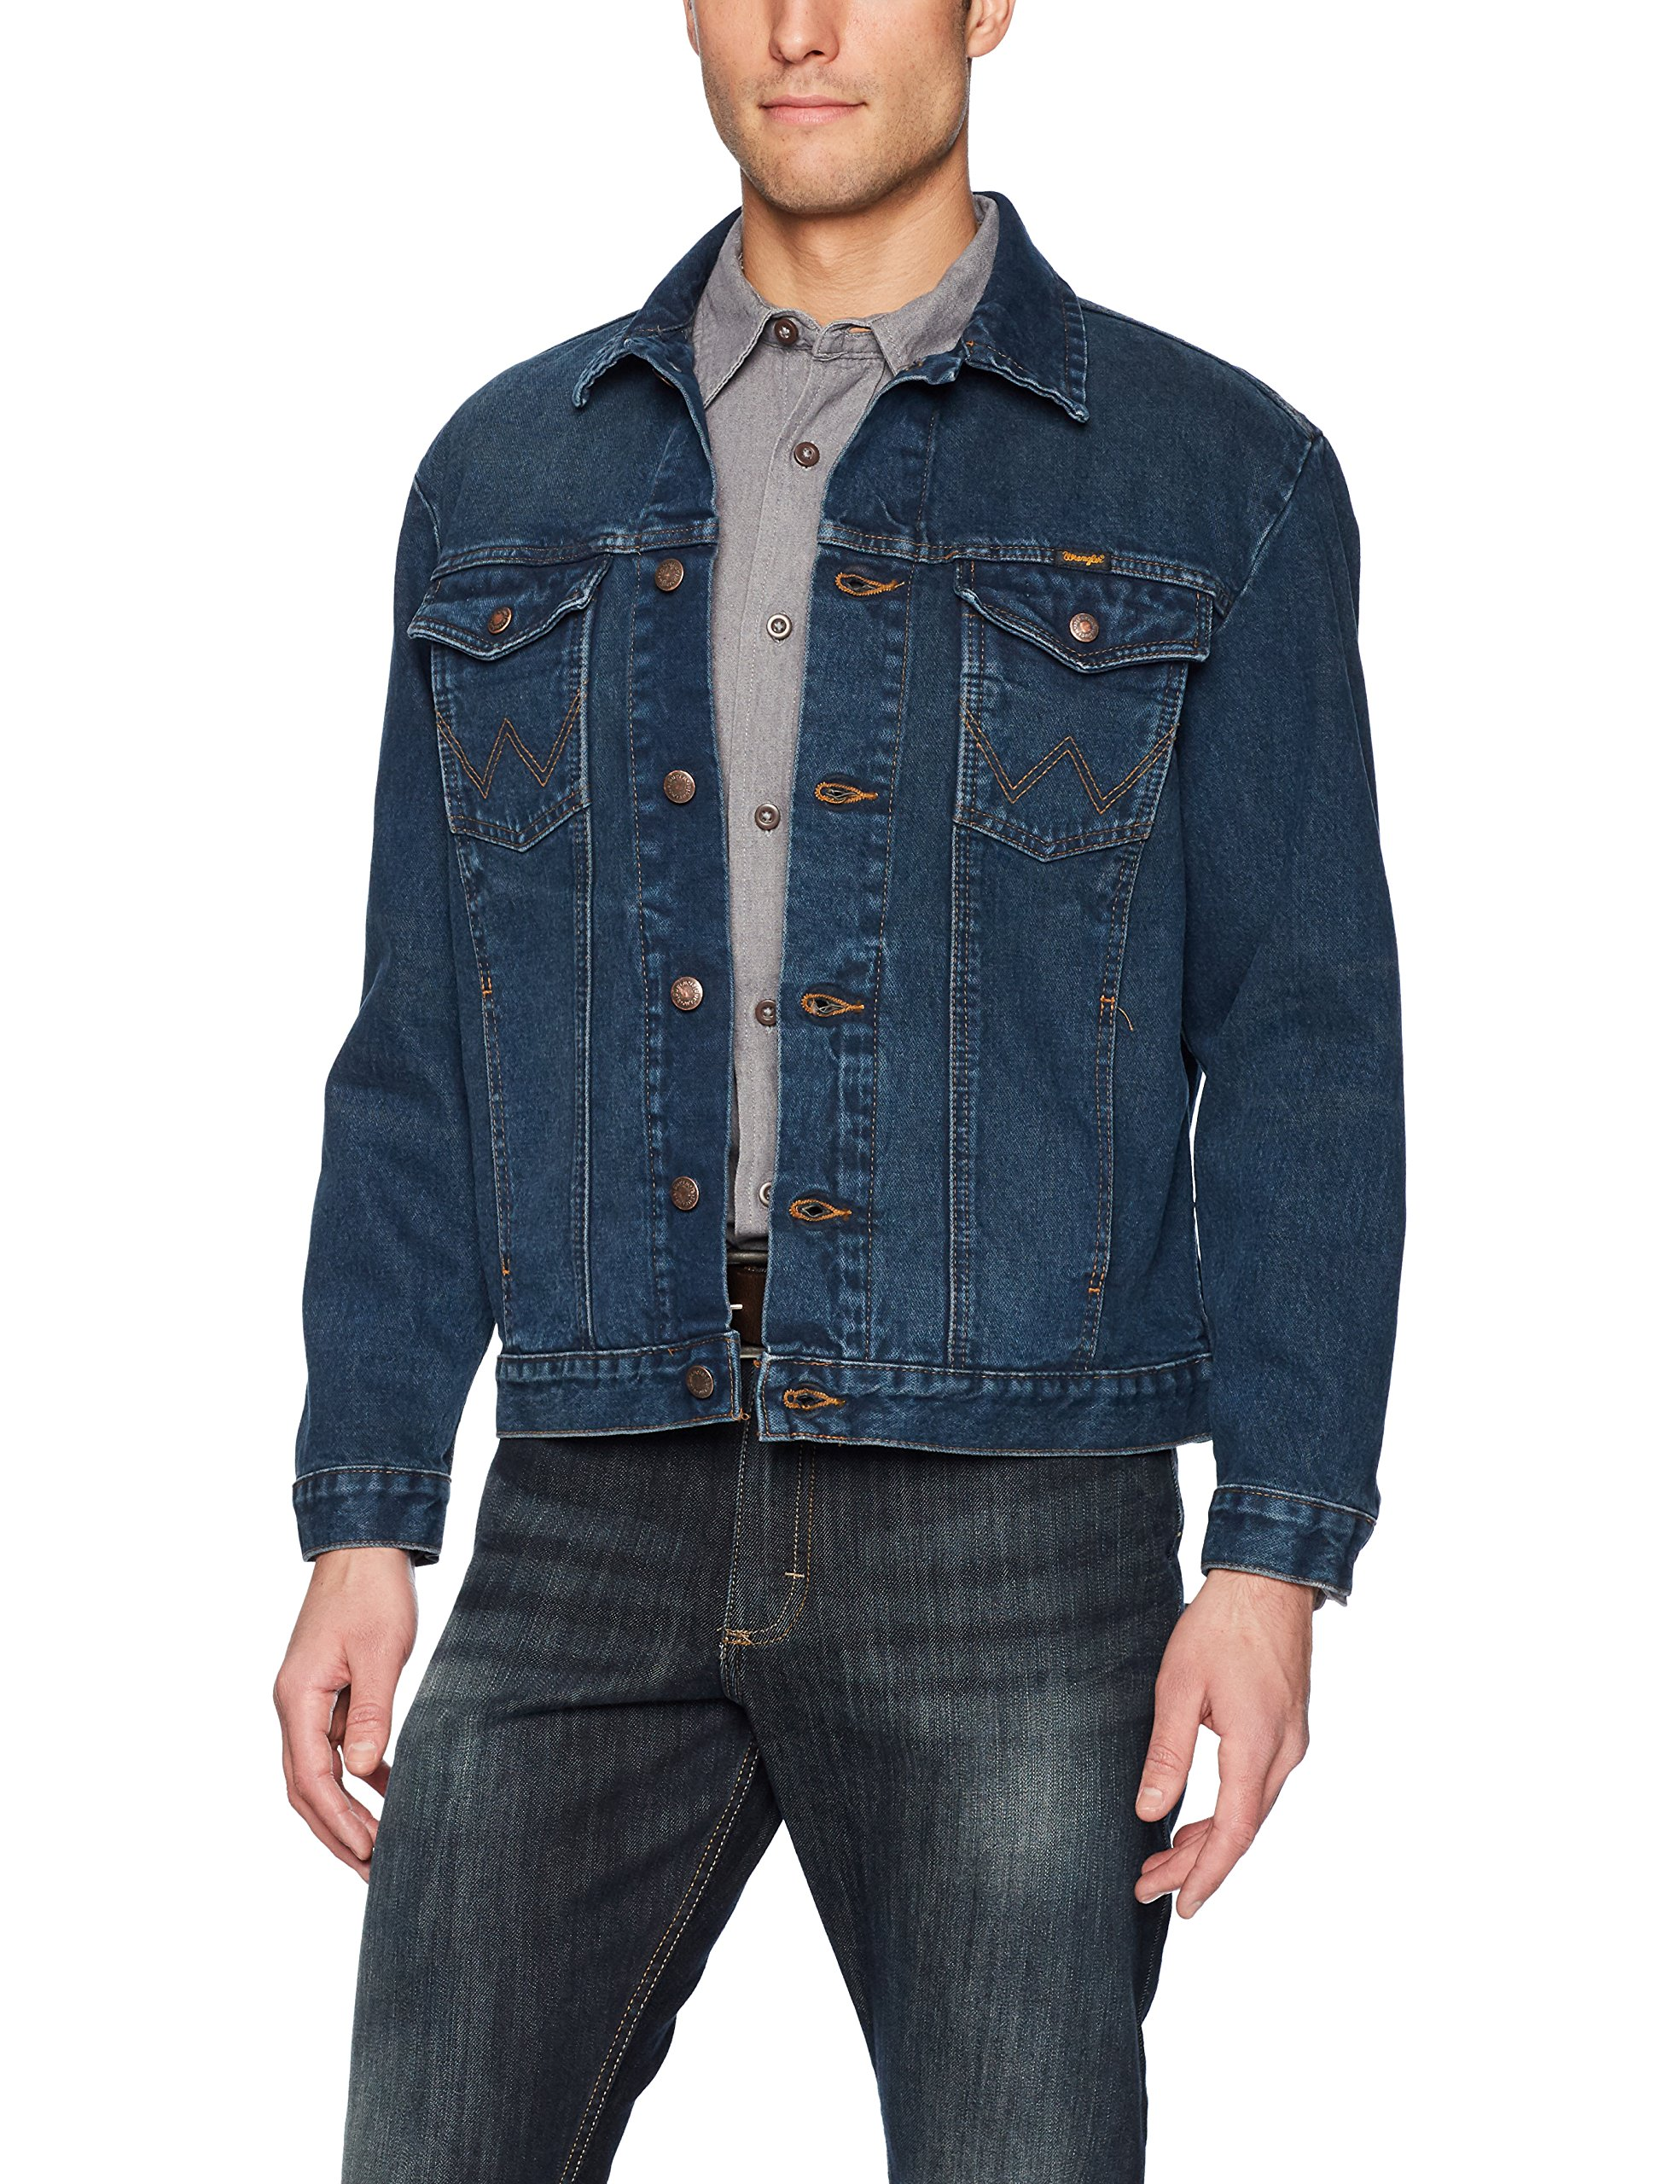 Wrangler Men's Western Style Denim Jacket, Dark Blue, M by Wrangler